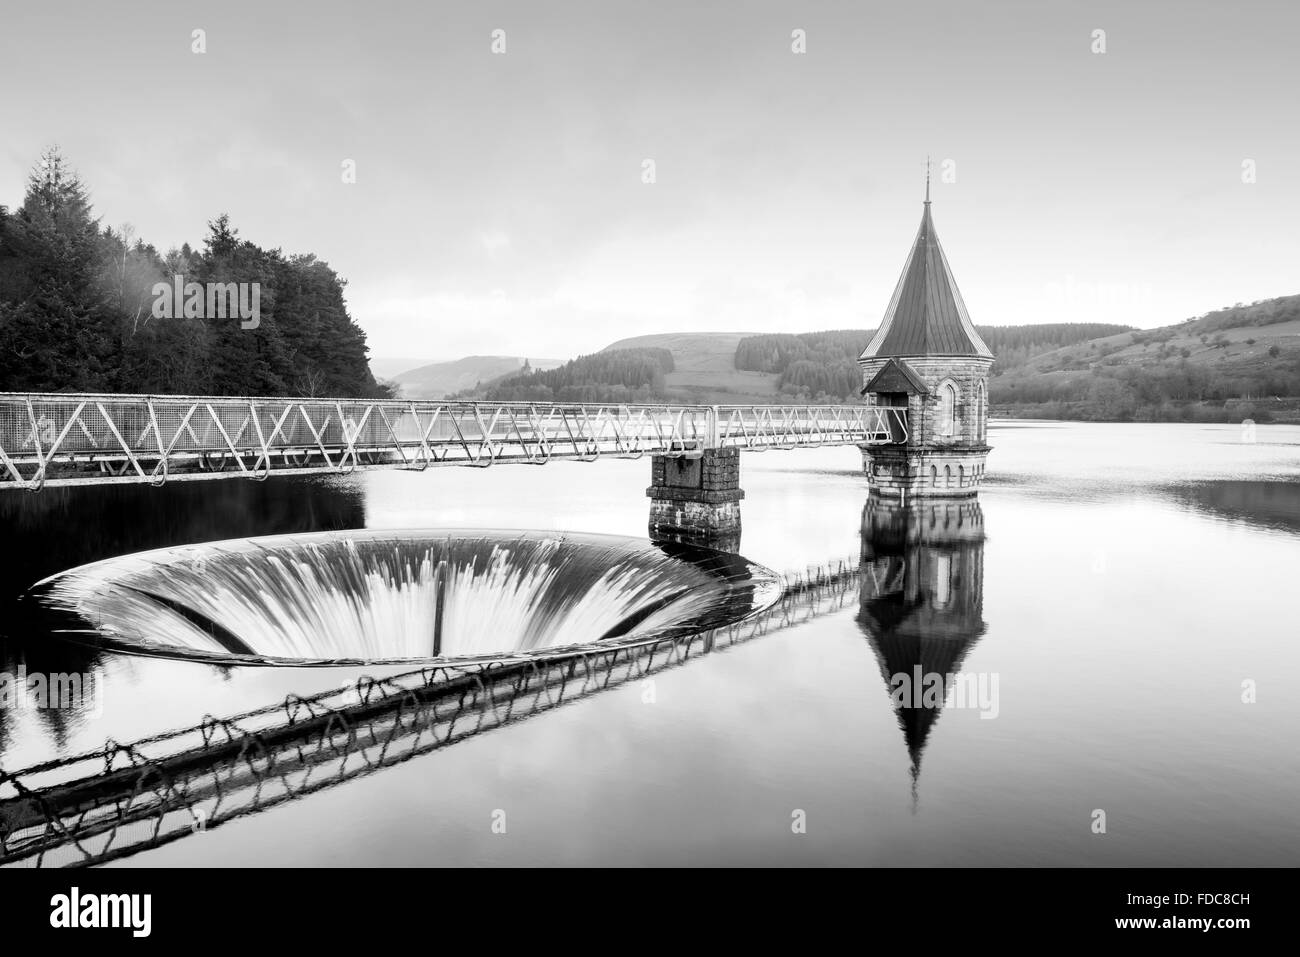 Pontsticill Reservoir, Wales, UK. Winter shot of water pouring down the overflow 'plughole'. - Stock Image